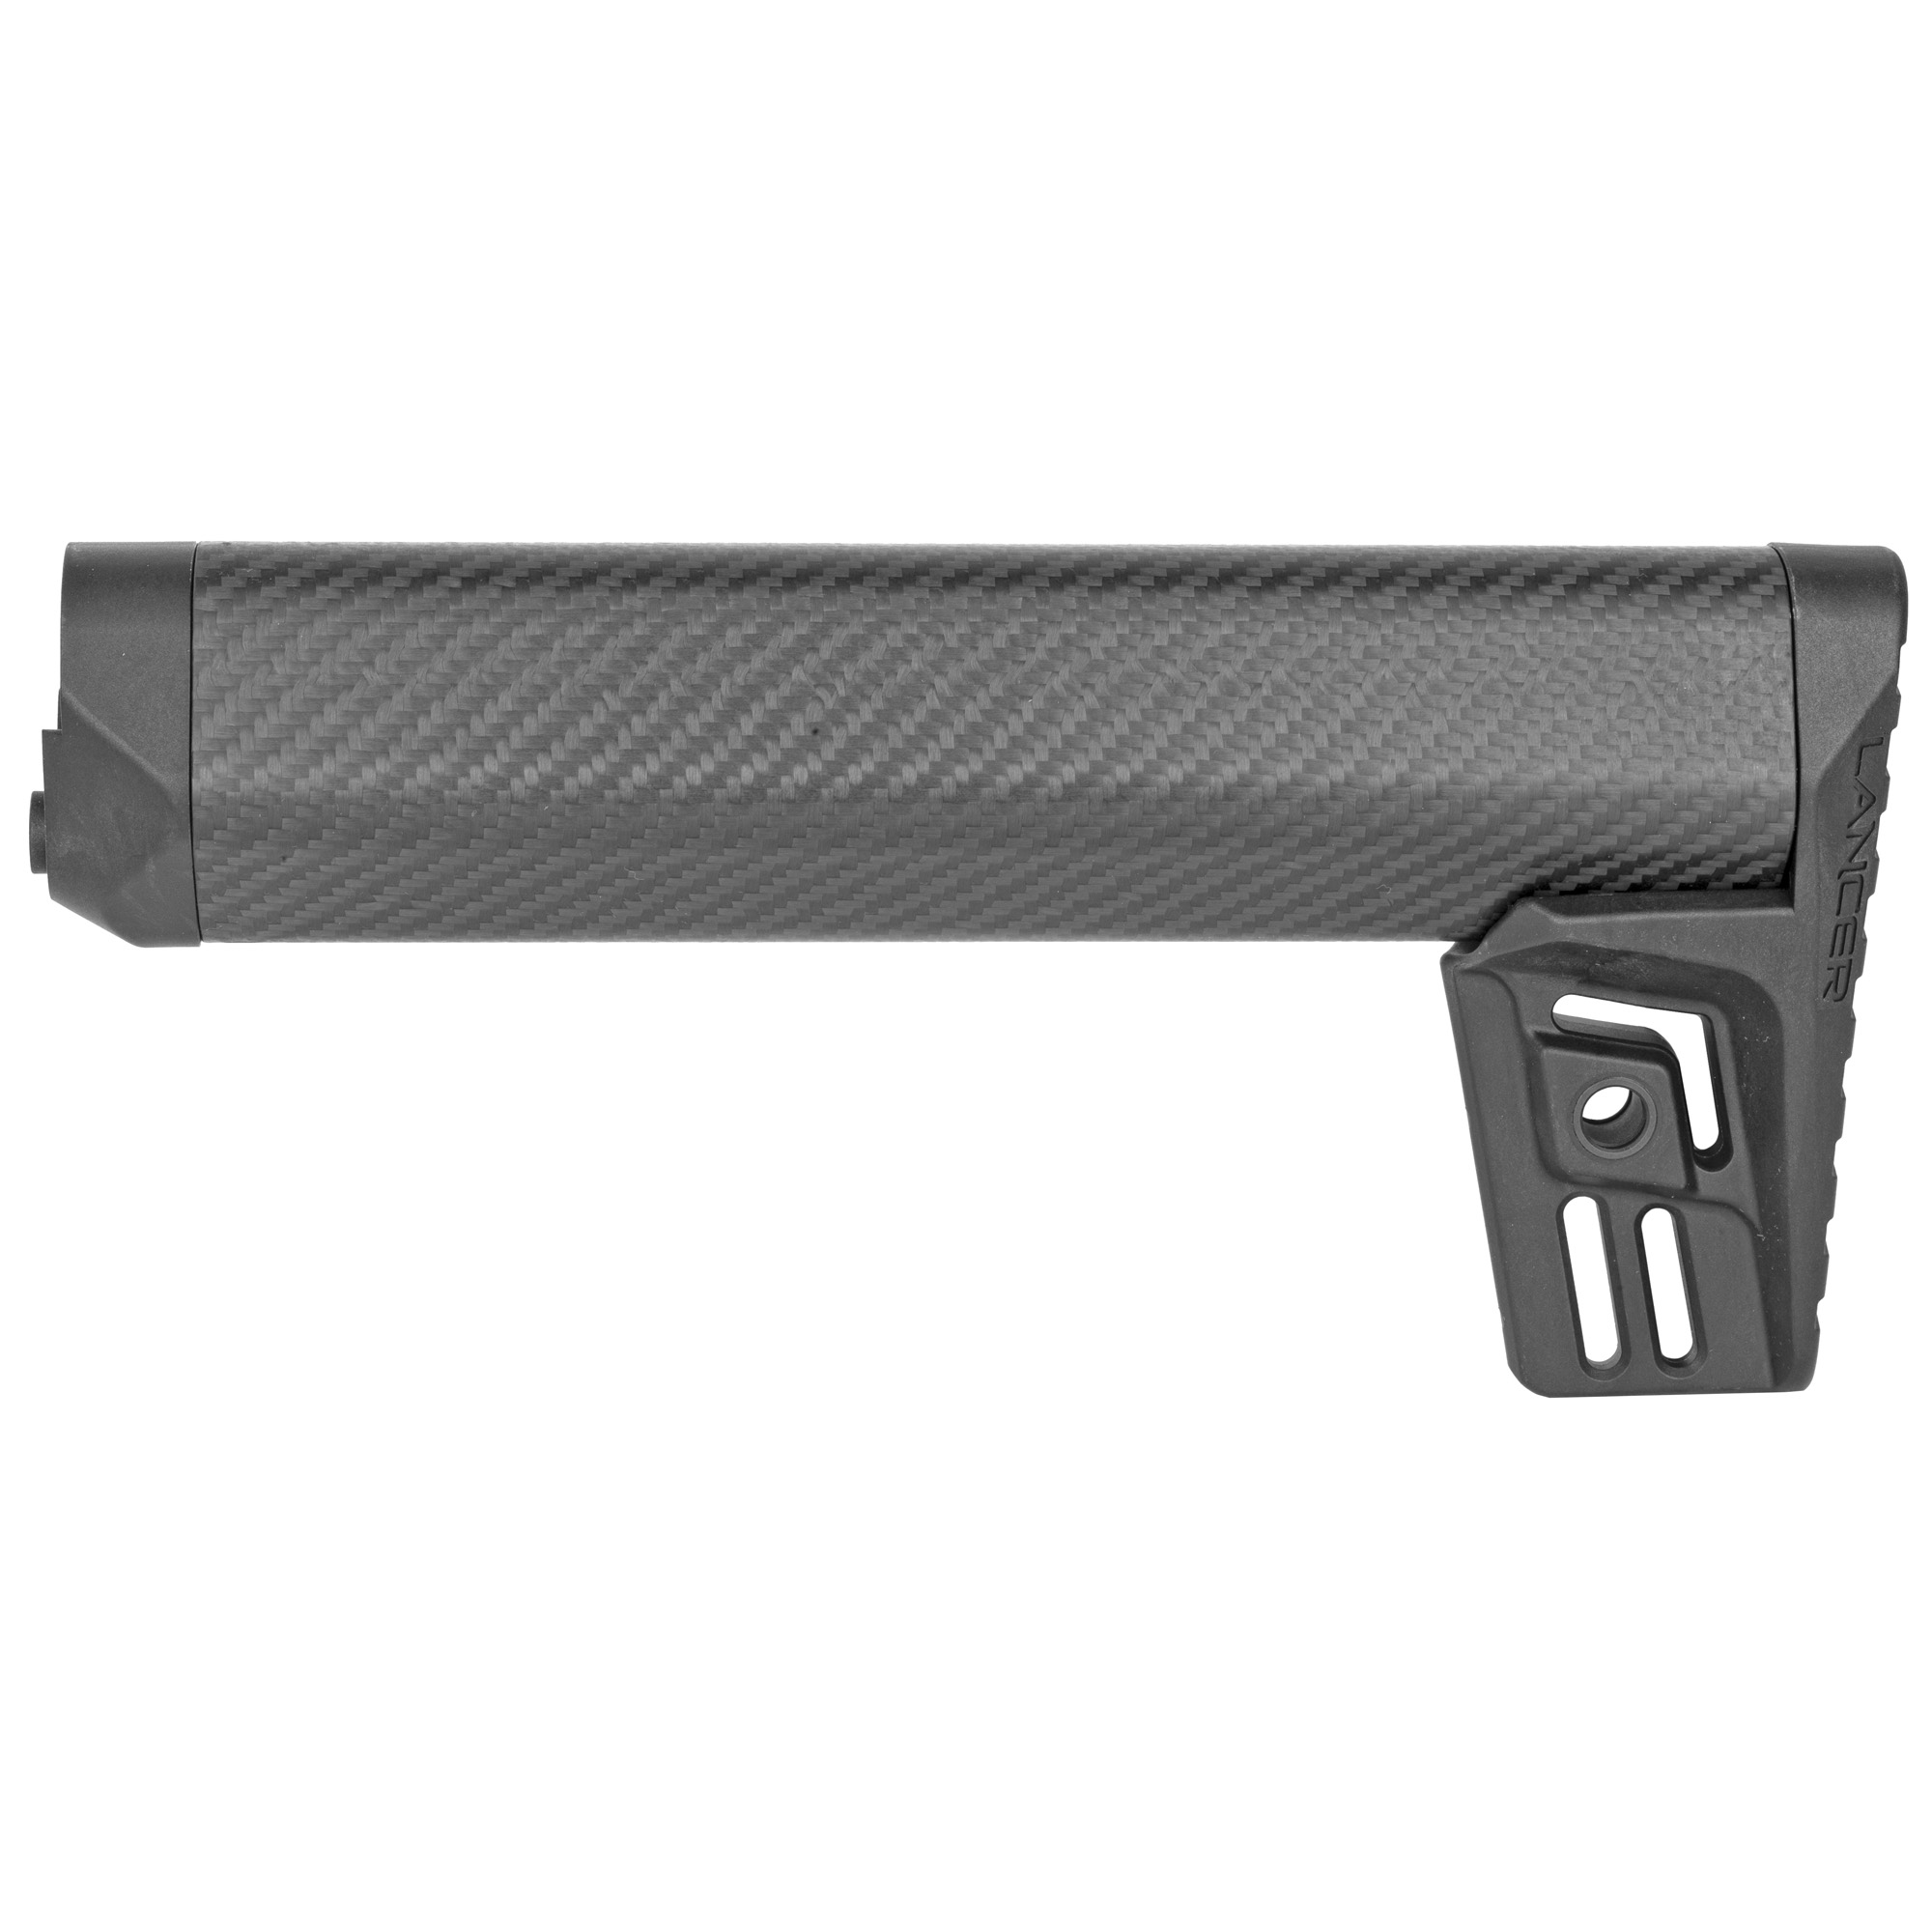 """The Lancer Round Carbon-Fiber Stock (LCS) is a lightweight fixed stock for 5.56mm and 7.62mm AR style rifles that use a fixed rifle length buffer tube. It is an A2-length of 10.8"""". The buffer tube is not included but the buttstock screw and spacer are included."""